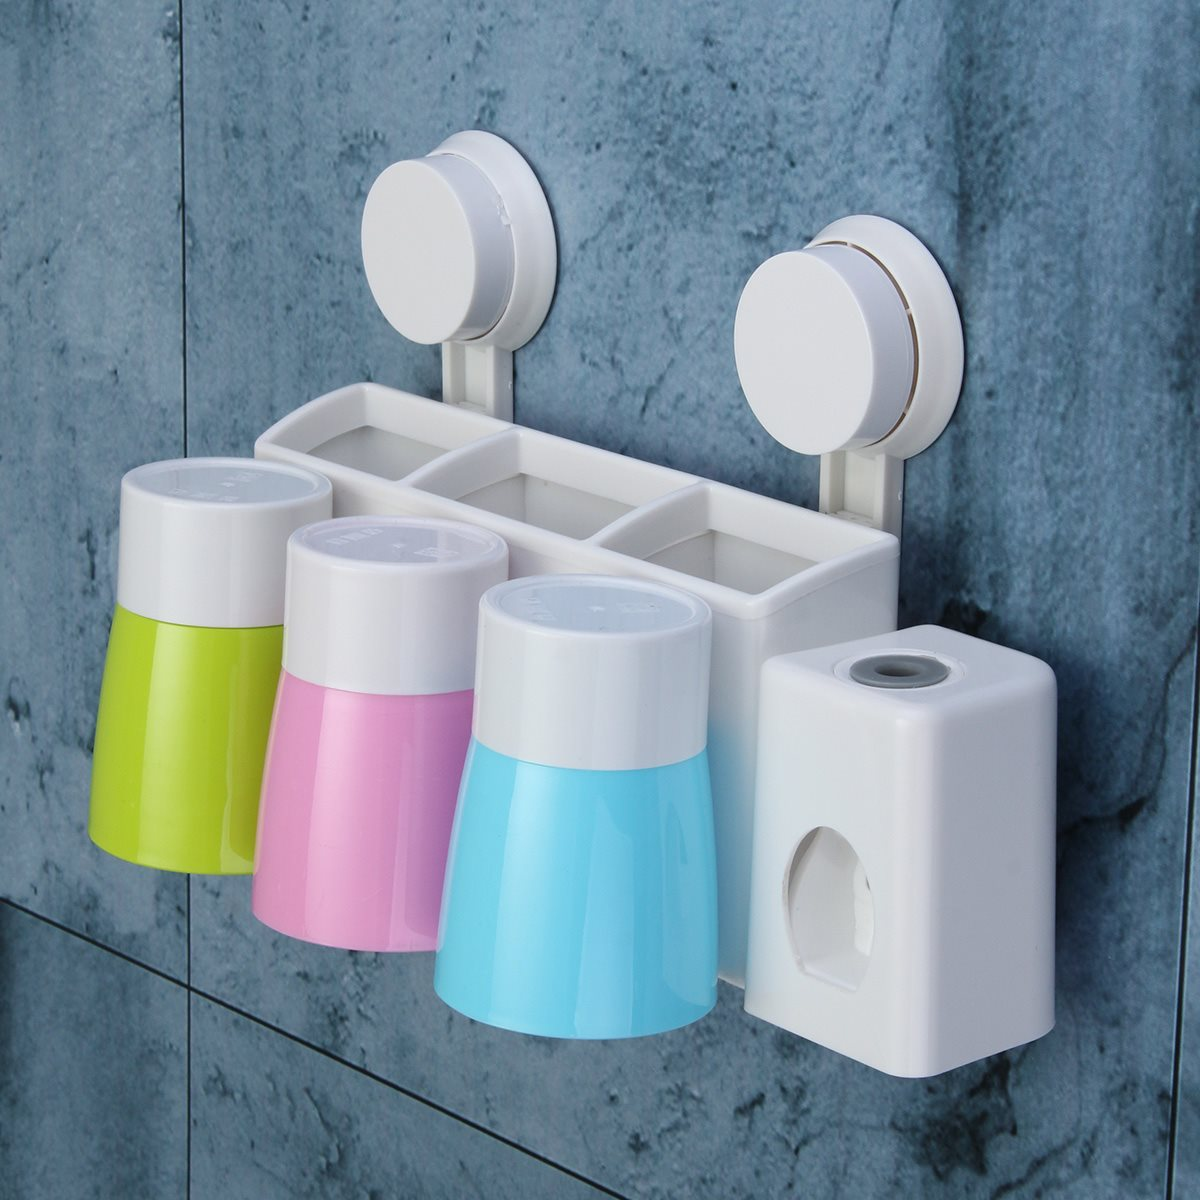 Automatic Toothpaste Dispenser Toothbrush Cups Holder Stand Sucker ...